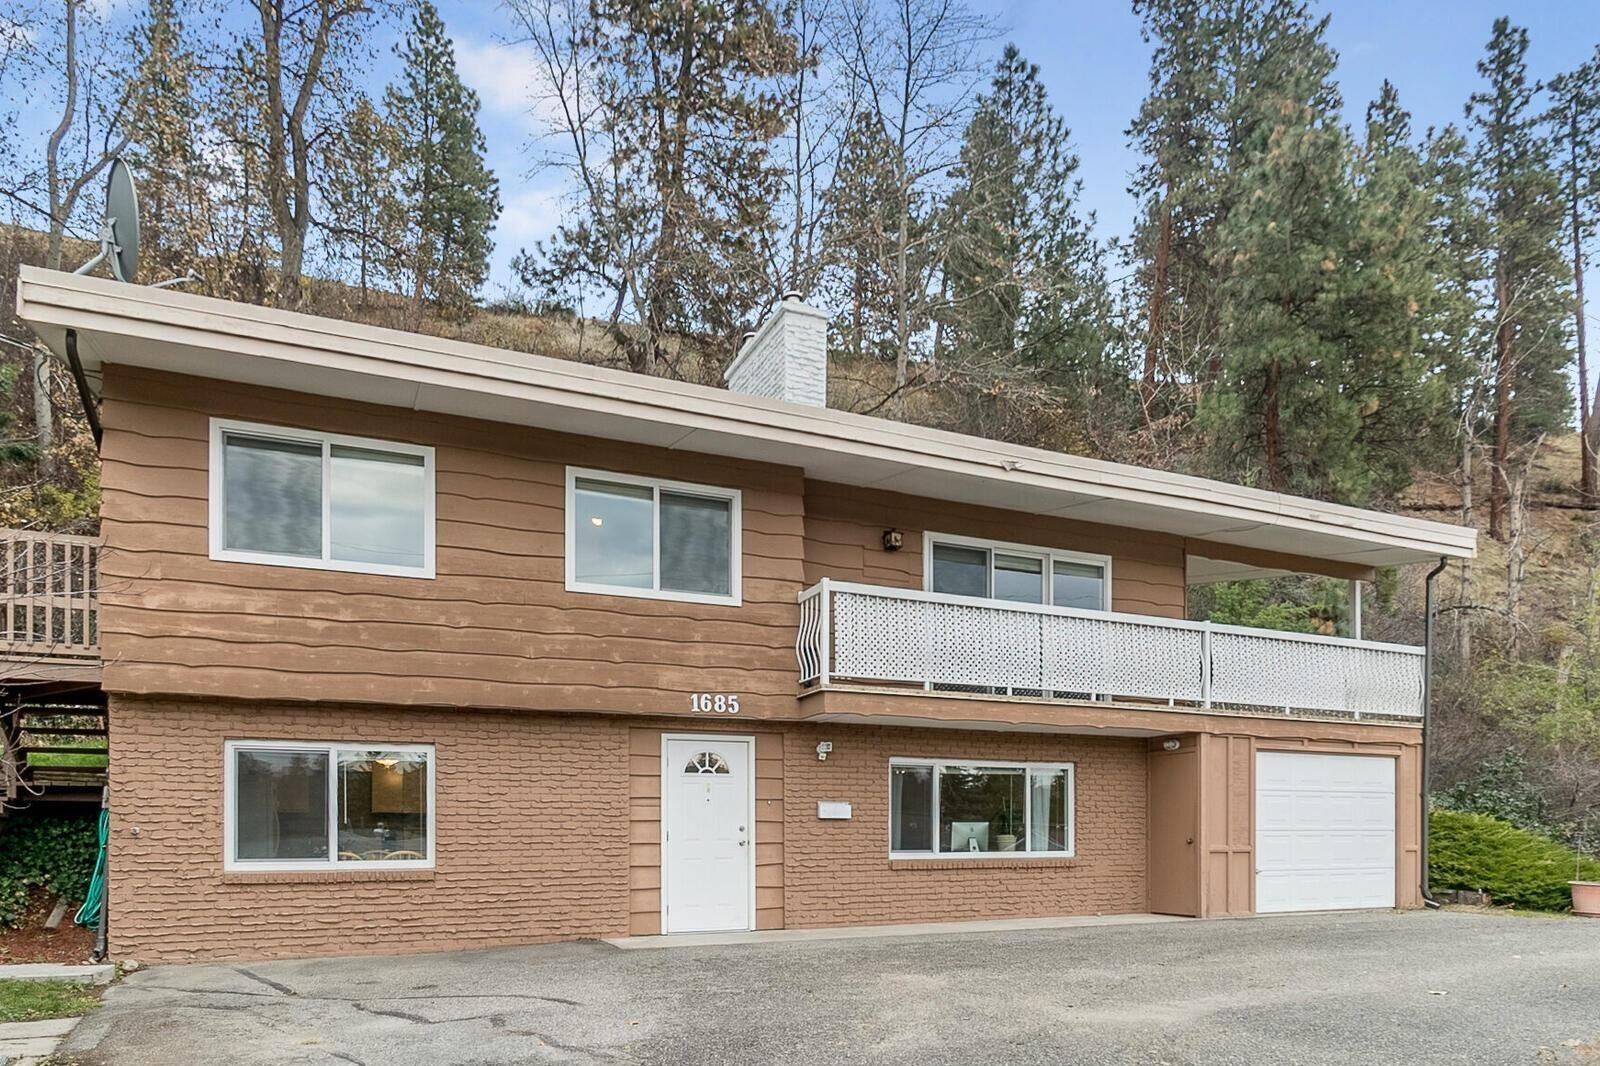 House for sale at 1685 Hollywood Rd South Kelowna British Columbia - MLS: 10220331